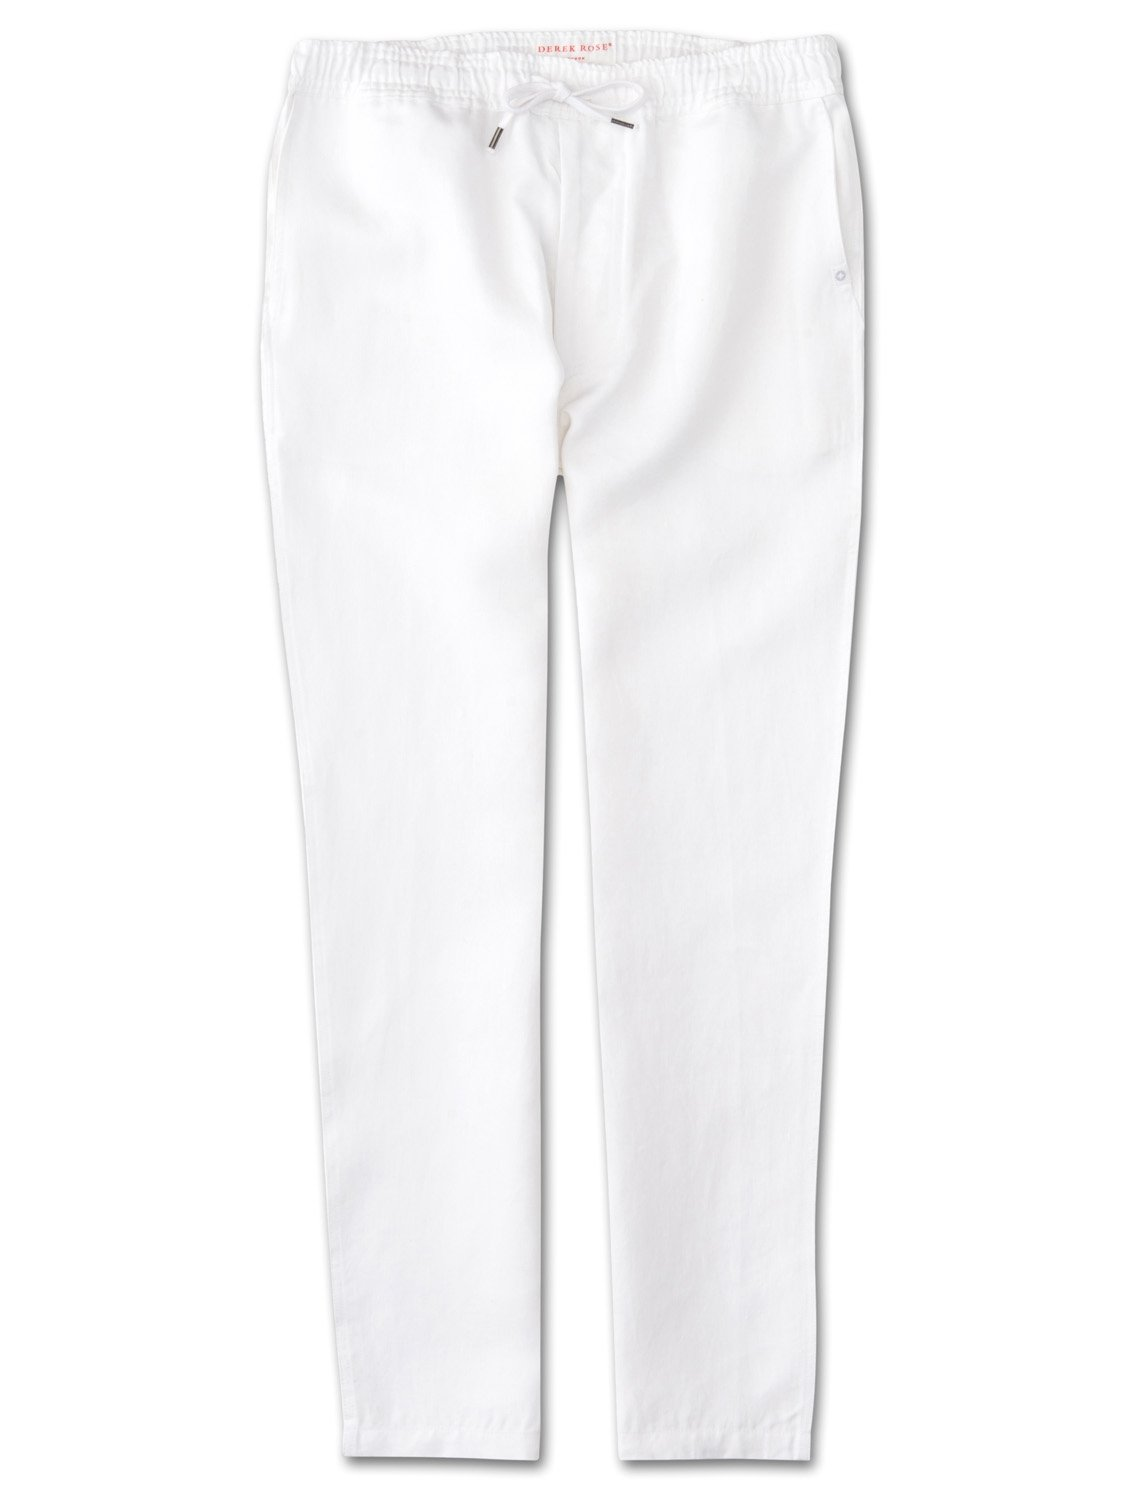 Men's Linen Trousers Sydney Linen White